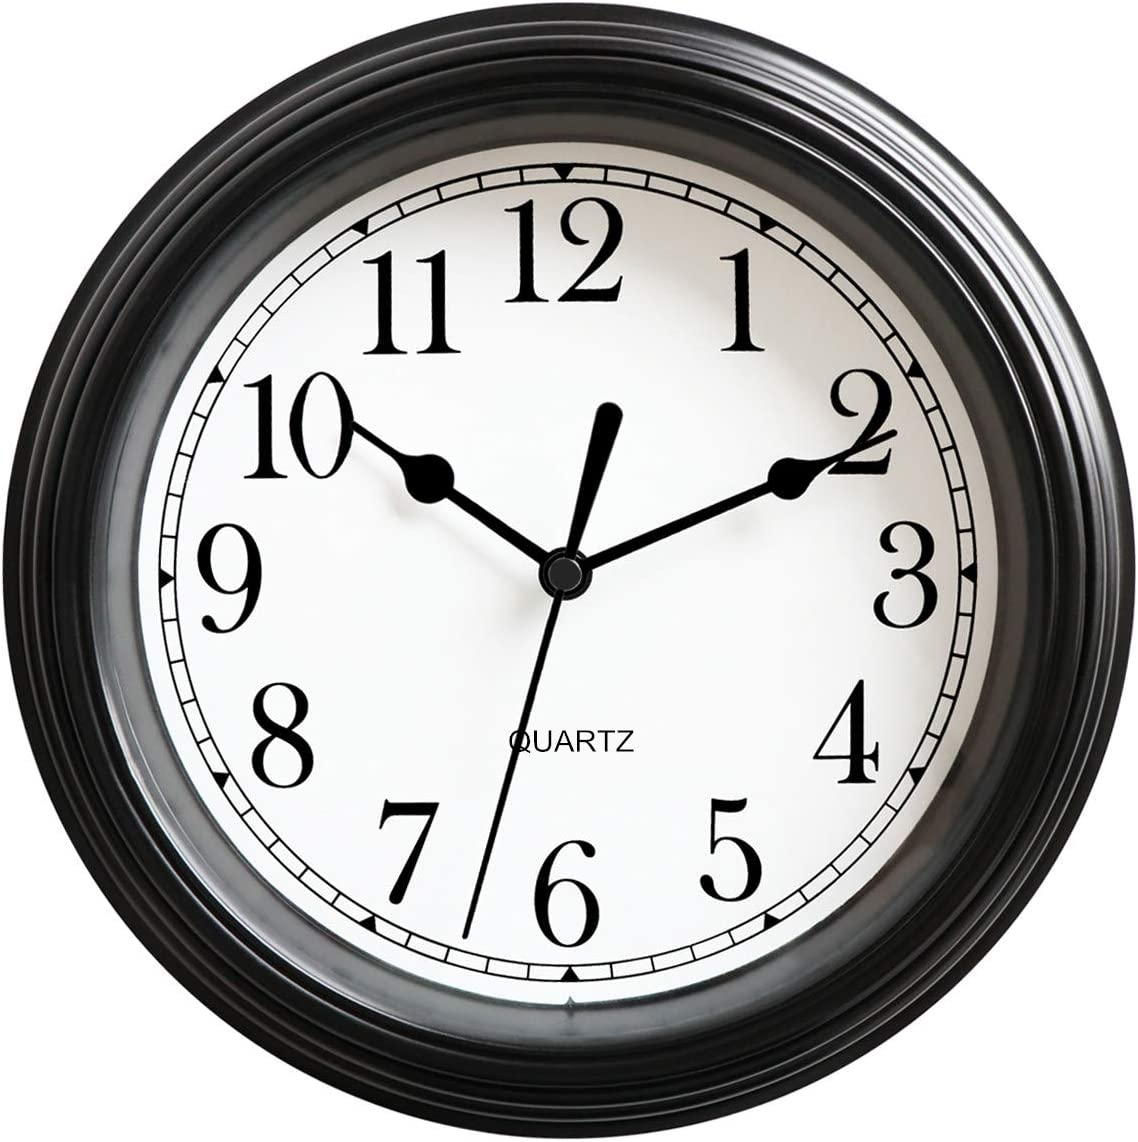 Foxtop Silent Non-Ticking Round Classic Clock Retro Quartz Decorative Battery Operated Wall Clock for Living Room Kitchen Home Office 12 inch (Black)